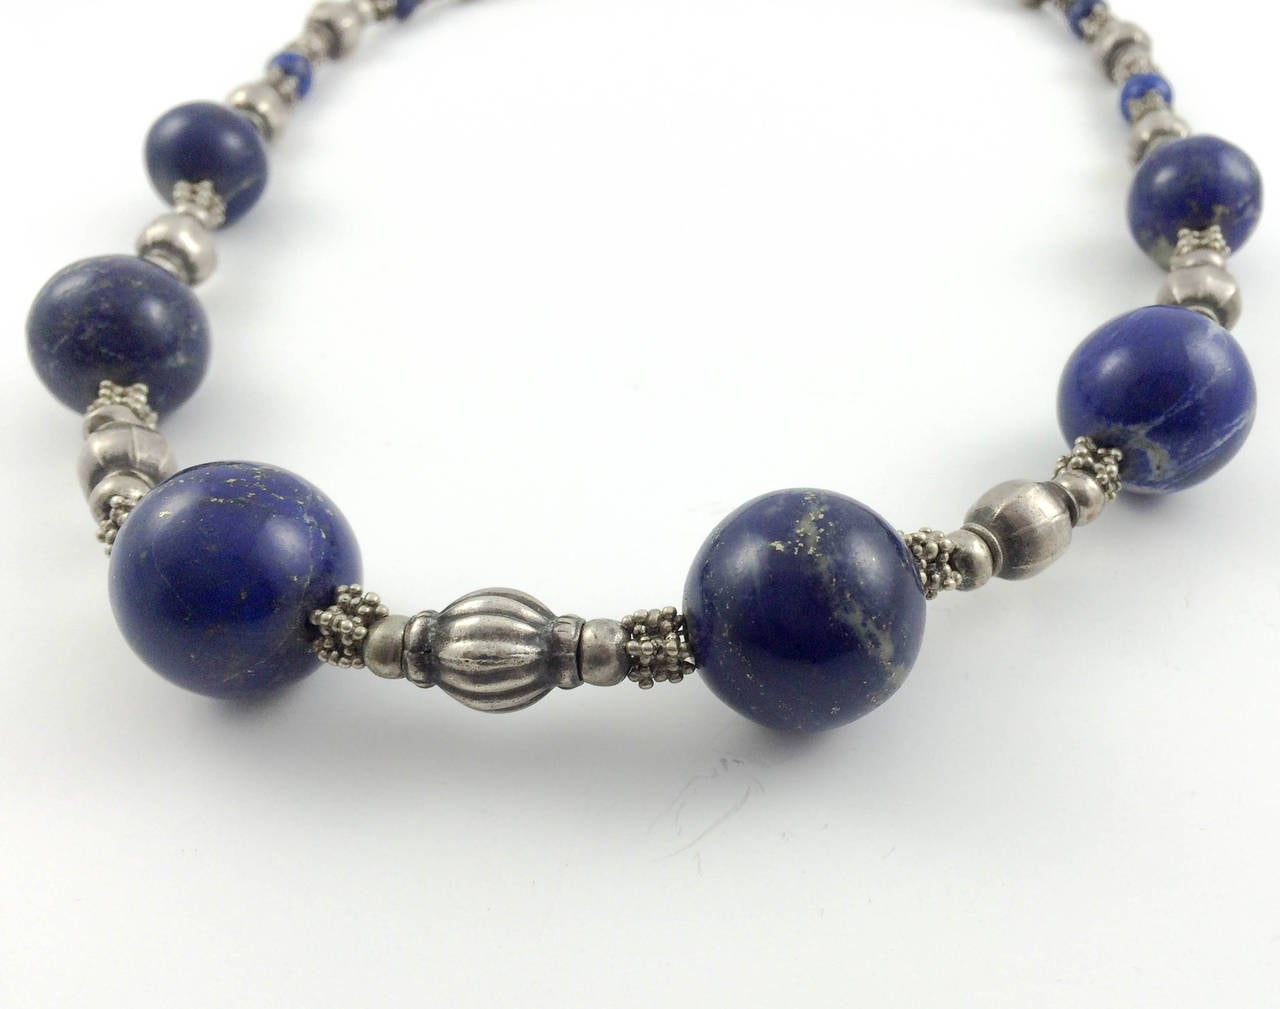 Silver and Lapis Lazuli Necklace - 1970s 5